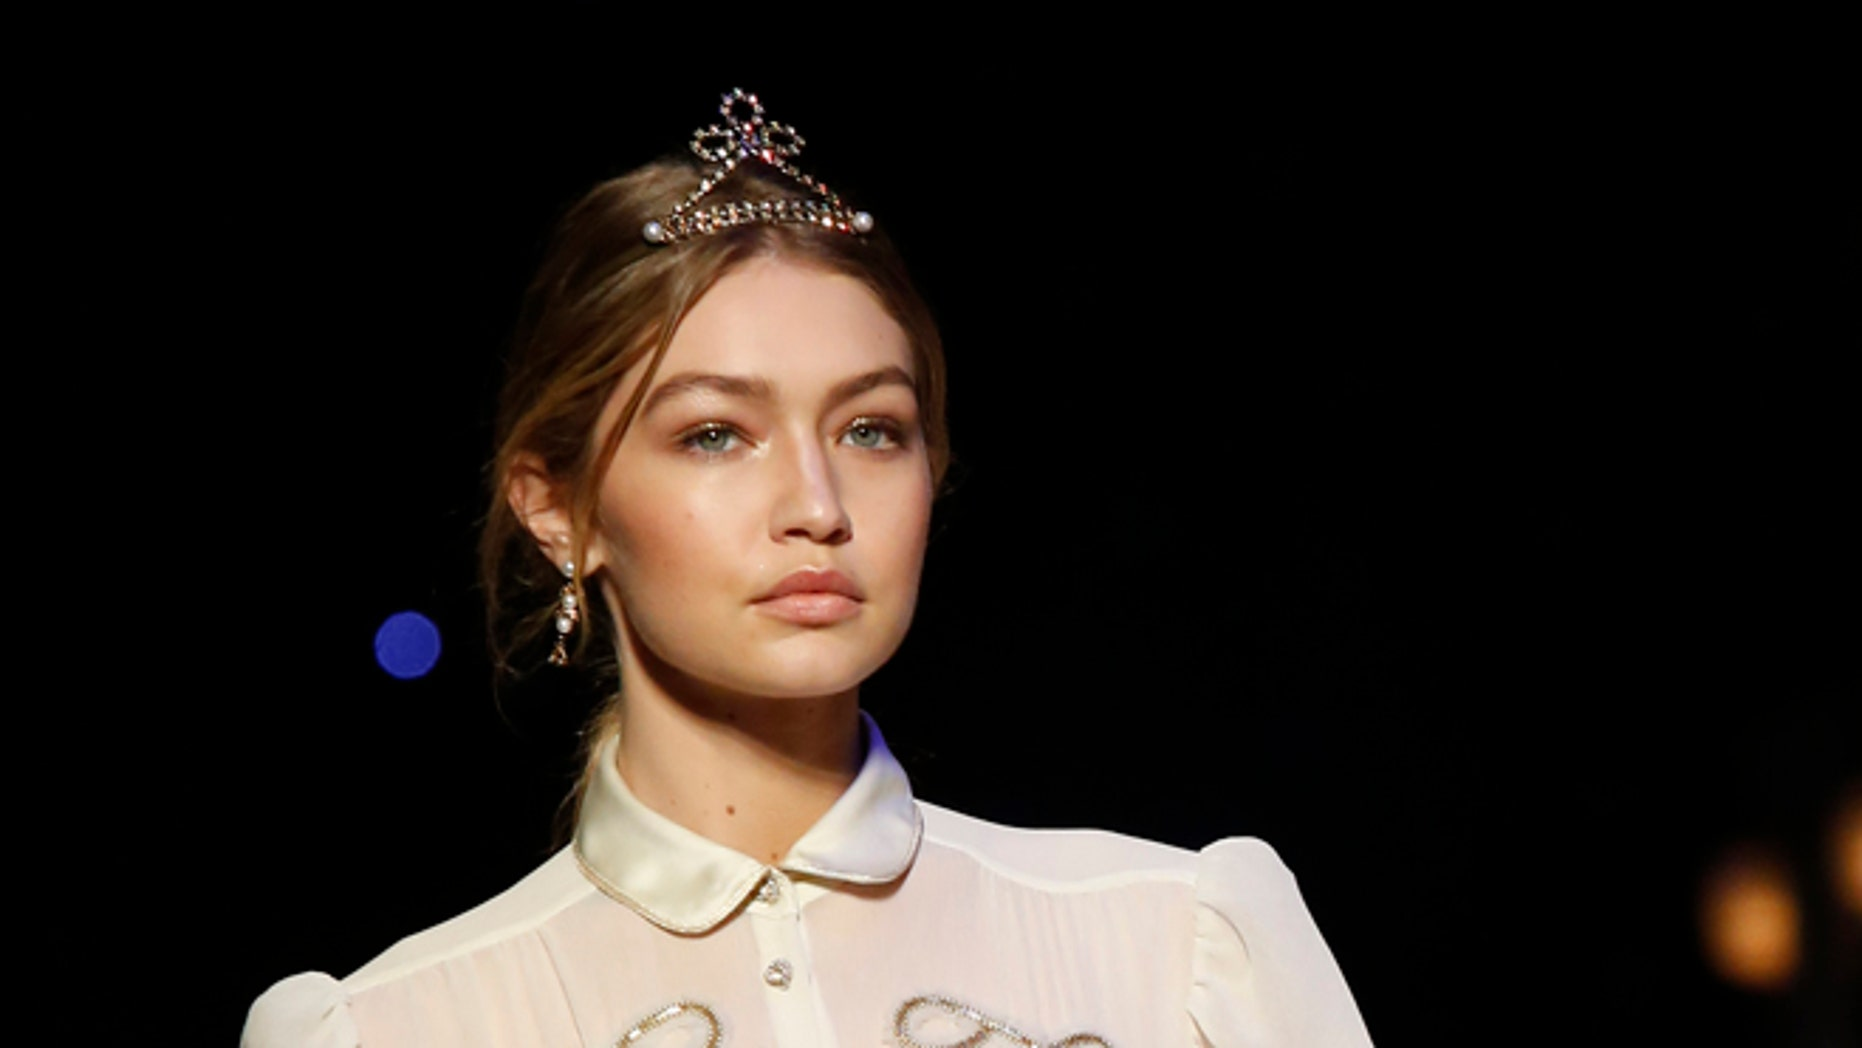 February 15, 2016. Model Gigi Hadid presents a creation from the Tommy Hilfiger Fall/Winter 2016 collection during New York Fashion Week.